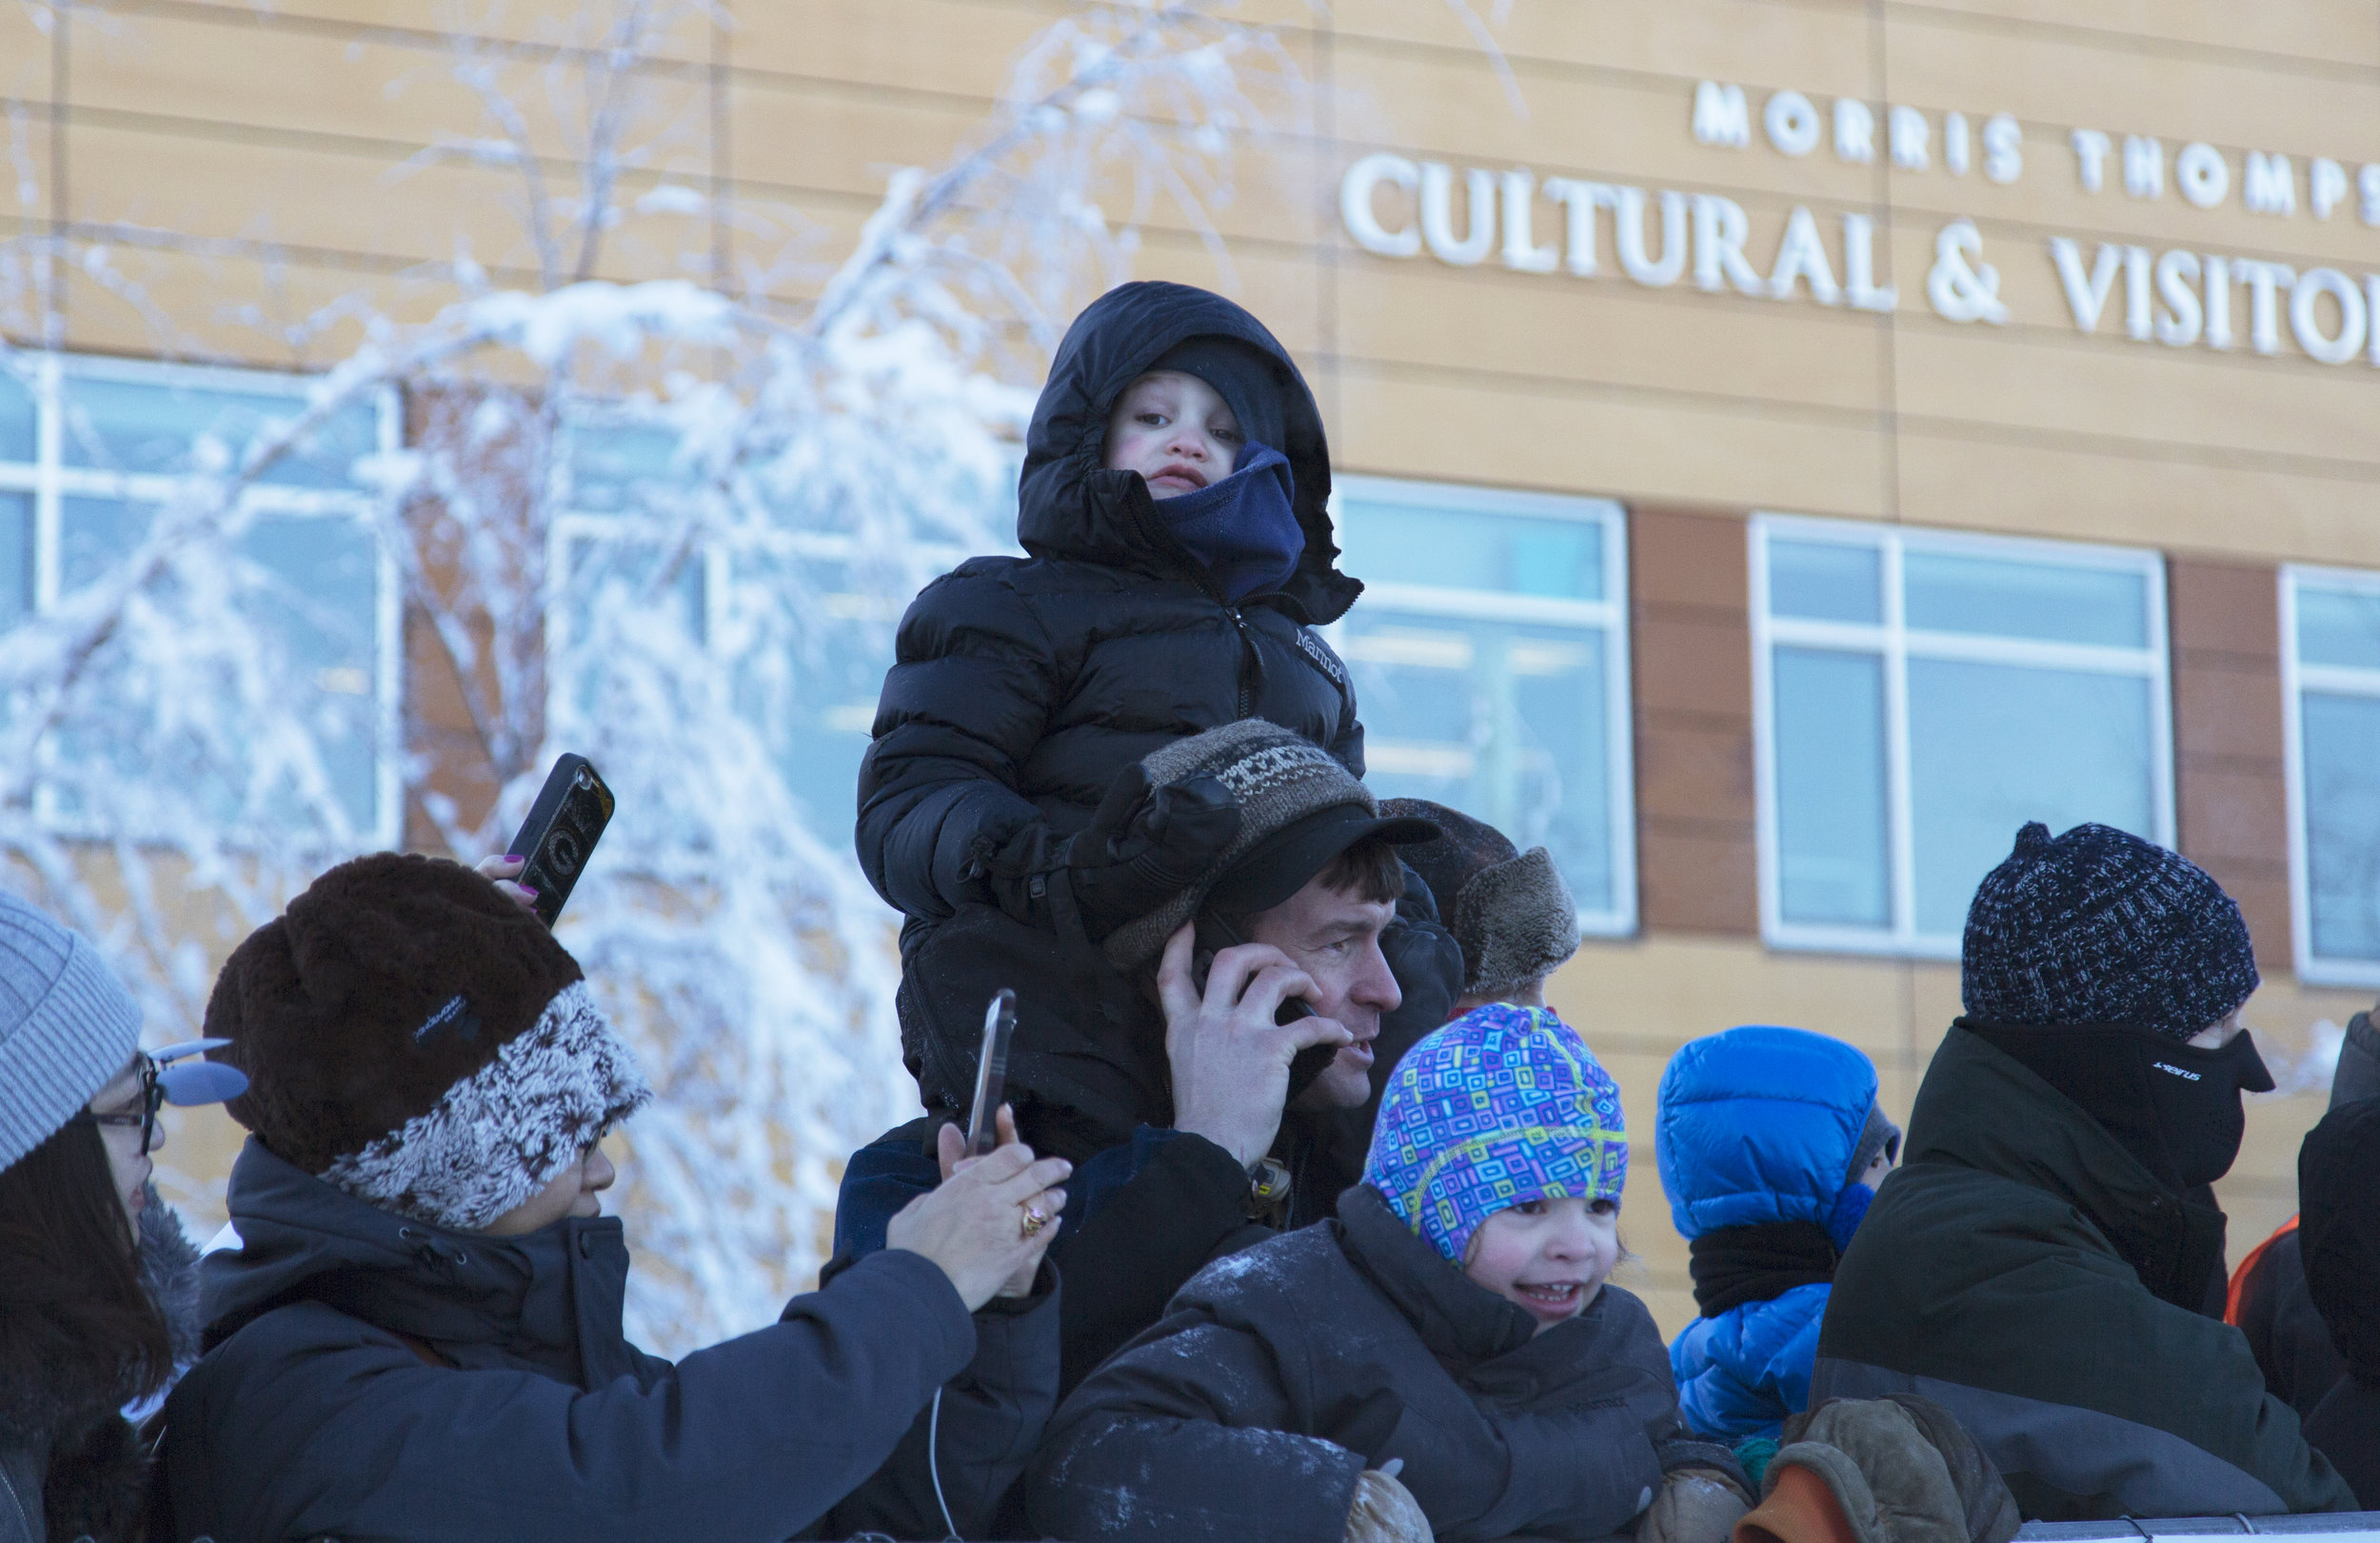 Young spectator gets a better view atop his father's shoulders. n some areas spectators were behind several rows of people. Crowds packed the barricades at the start line of the 2018 Yukon Quest despite the freezing temperatures of -20F. Folks were bundled in their winter gear and most armed with cameras. (c) Sarah Manriquez 2018